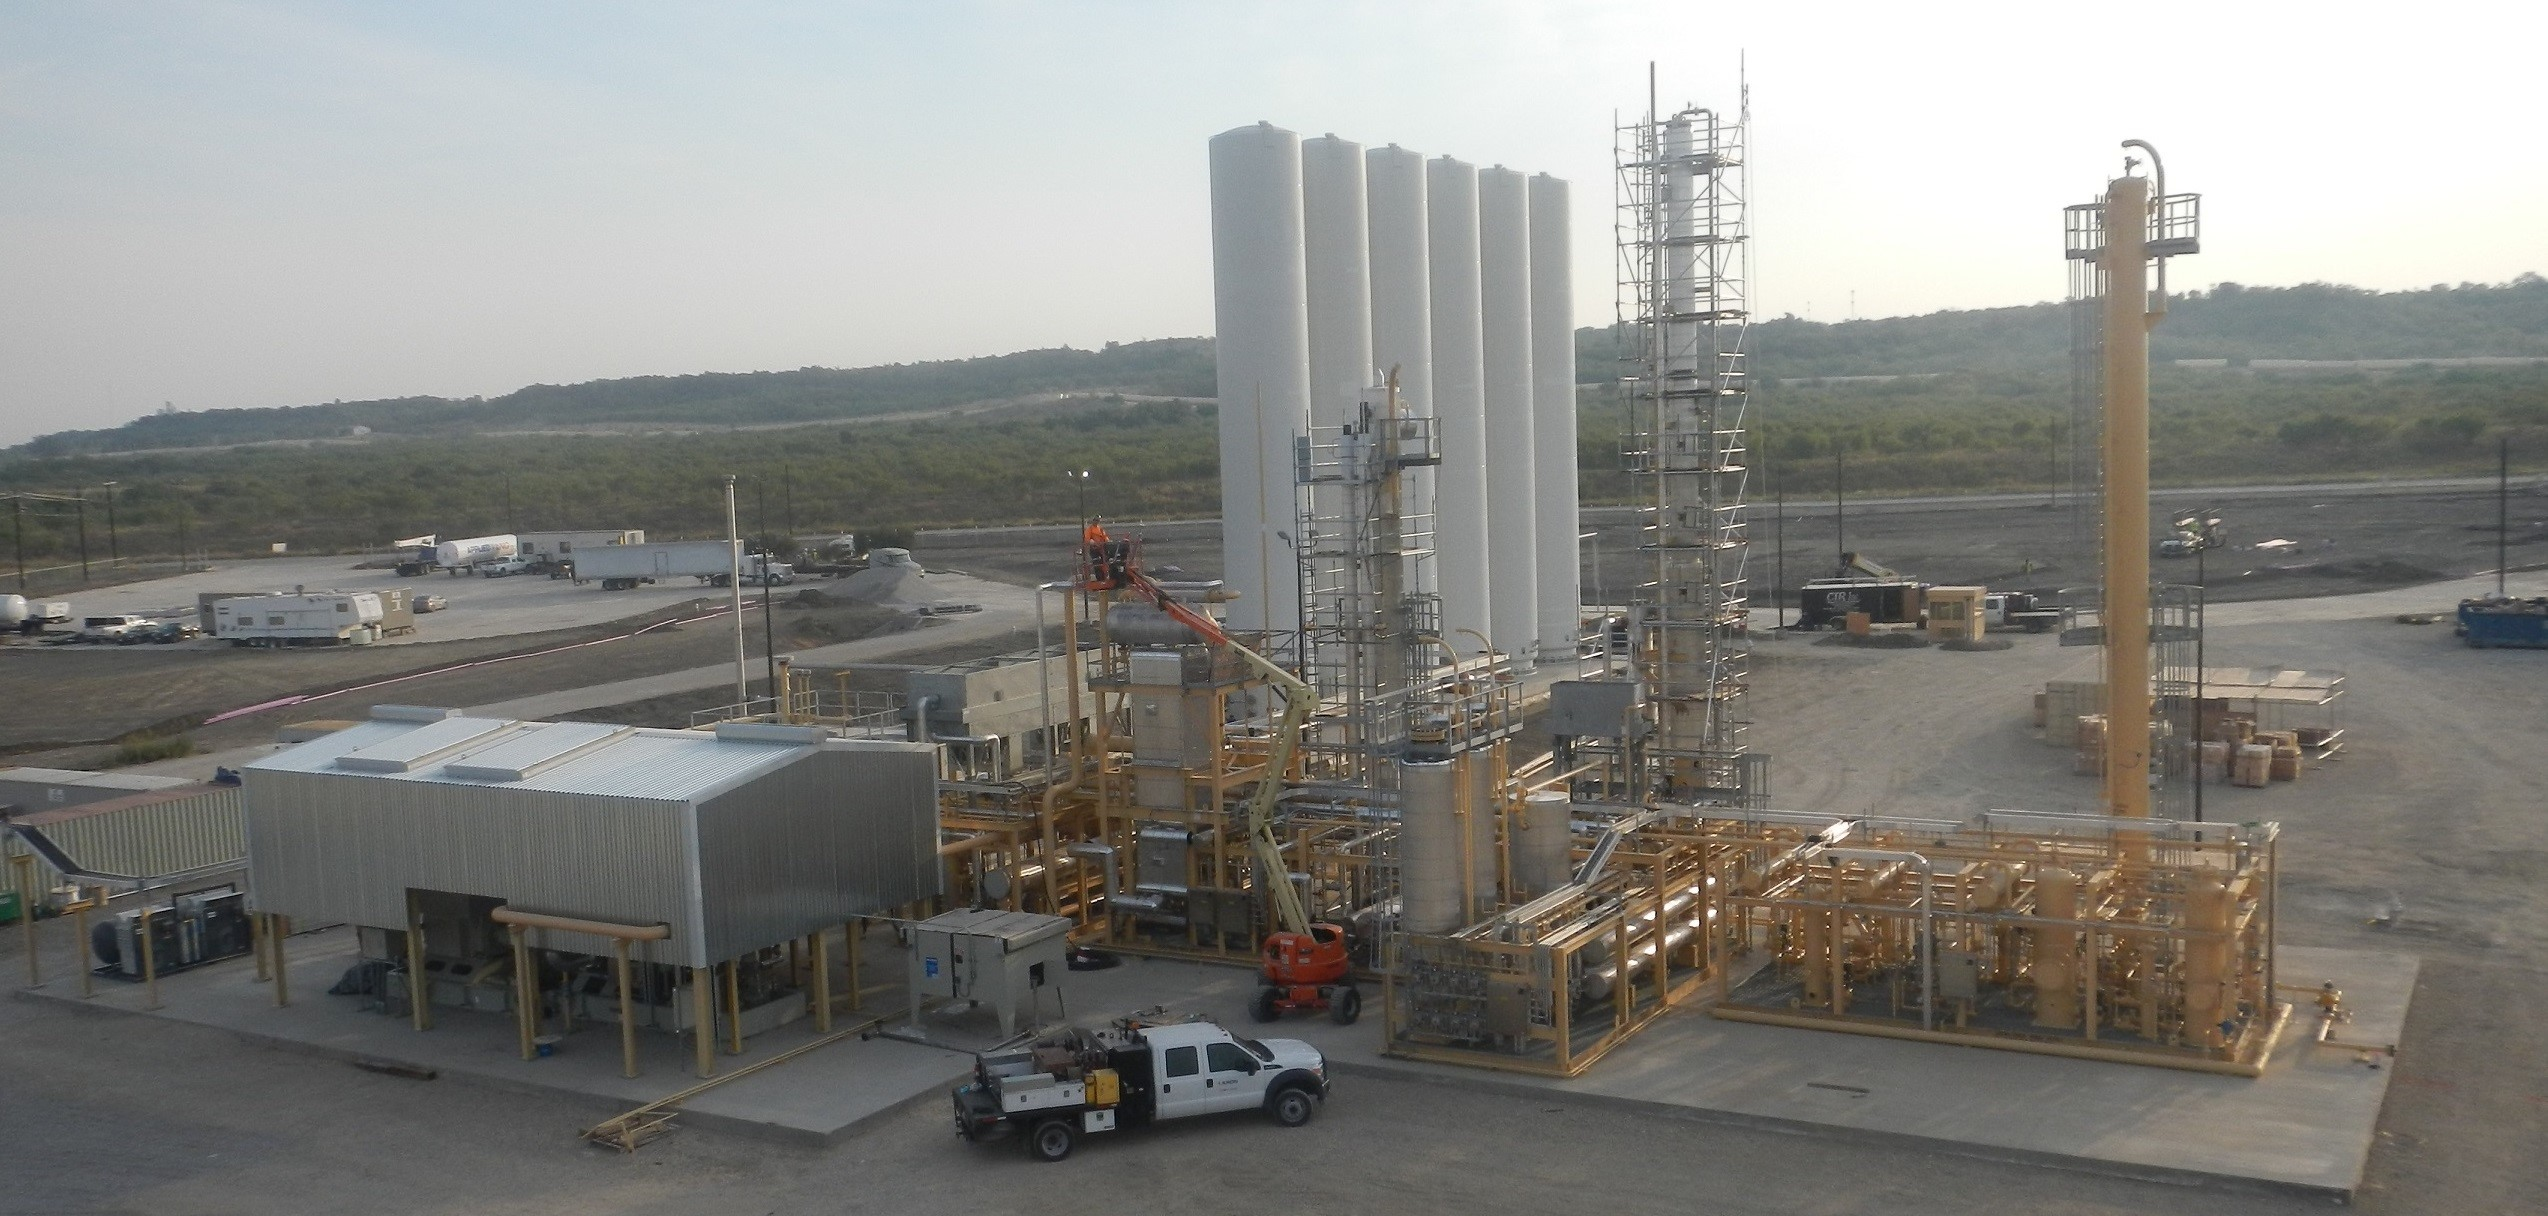 Primary Contractor for Liquefied Natural Gas